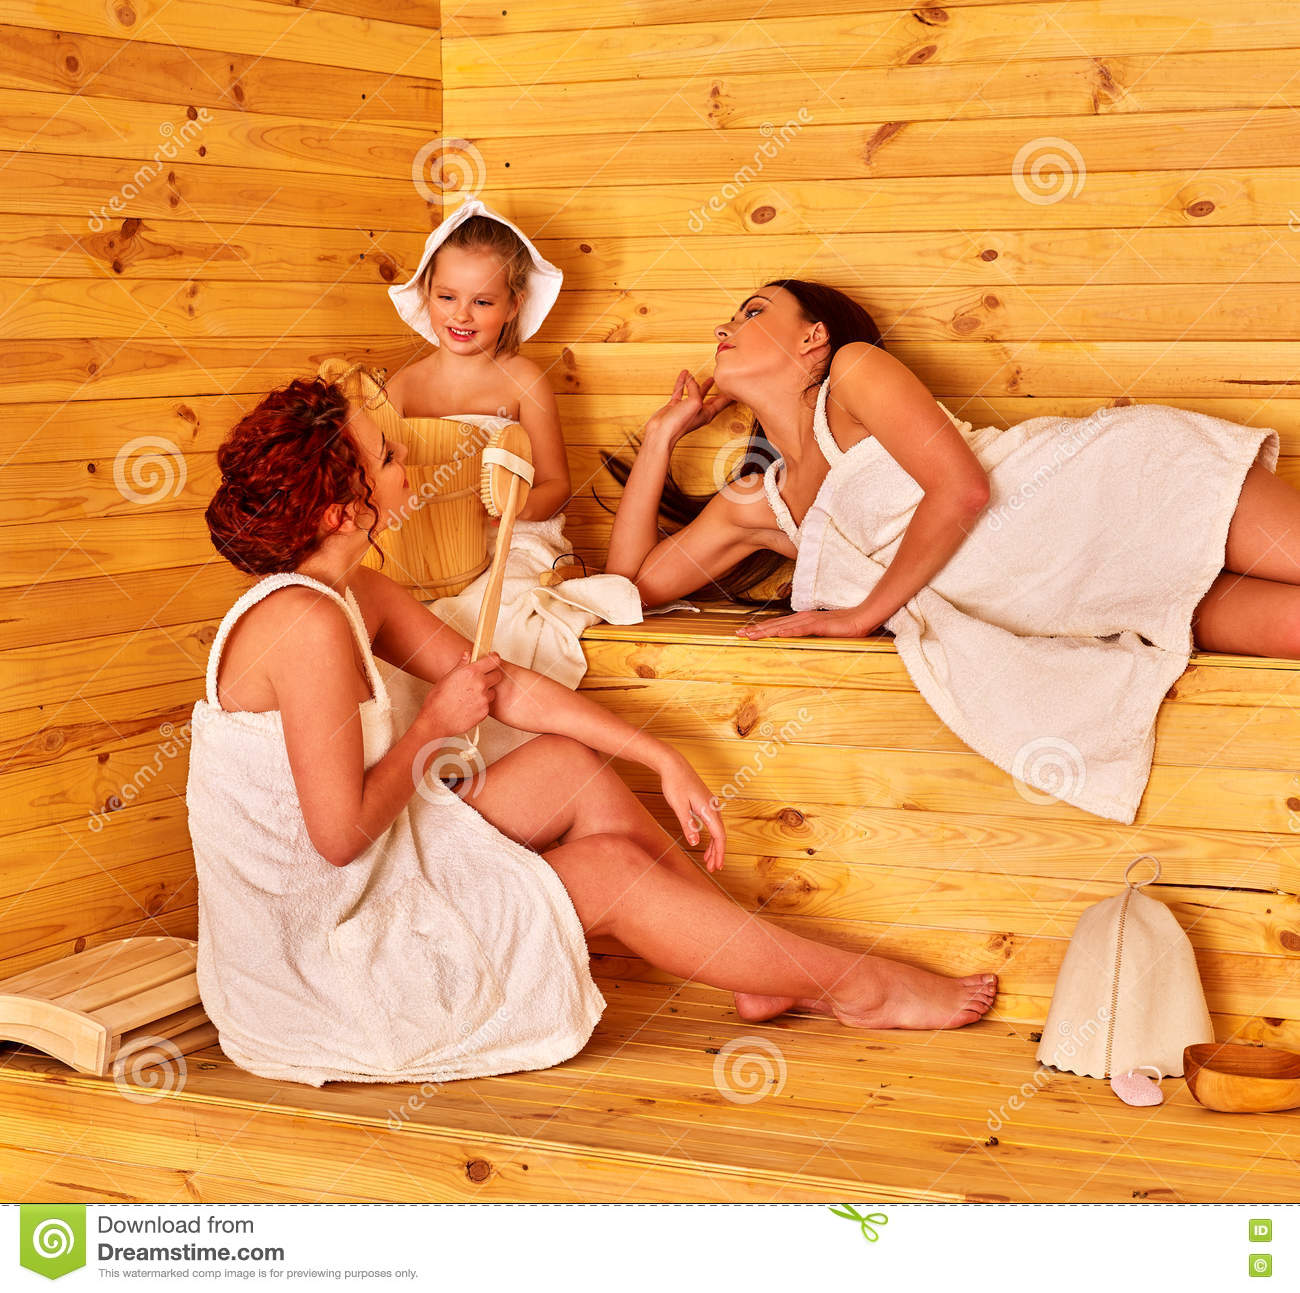 Sauna videos porn about babes playing in sauna